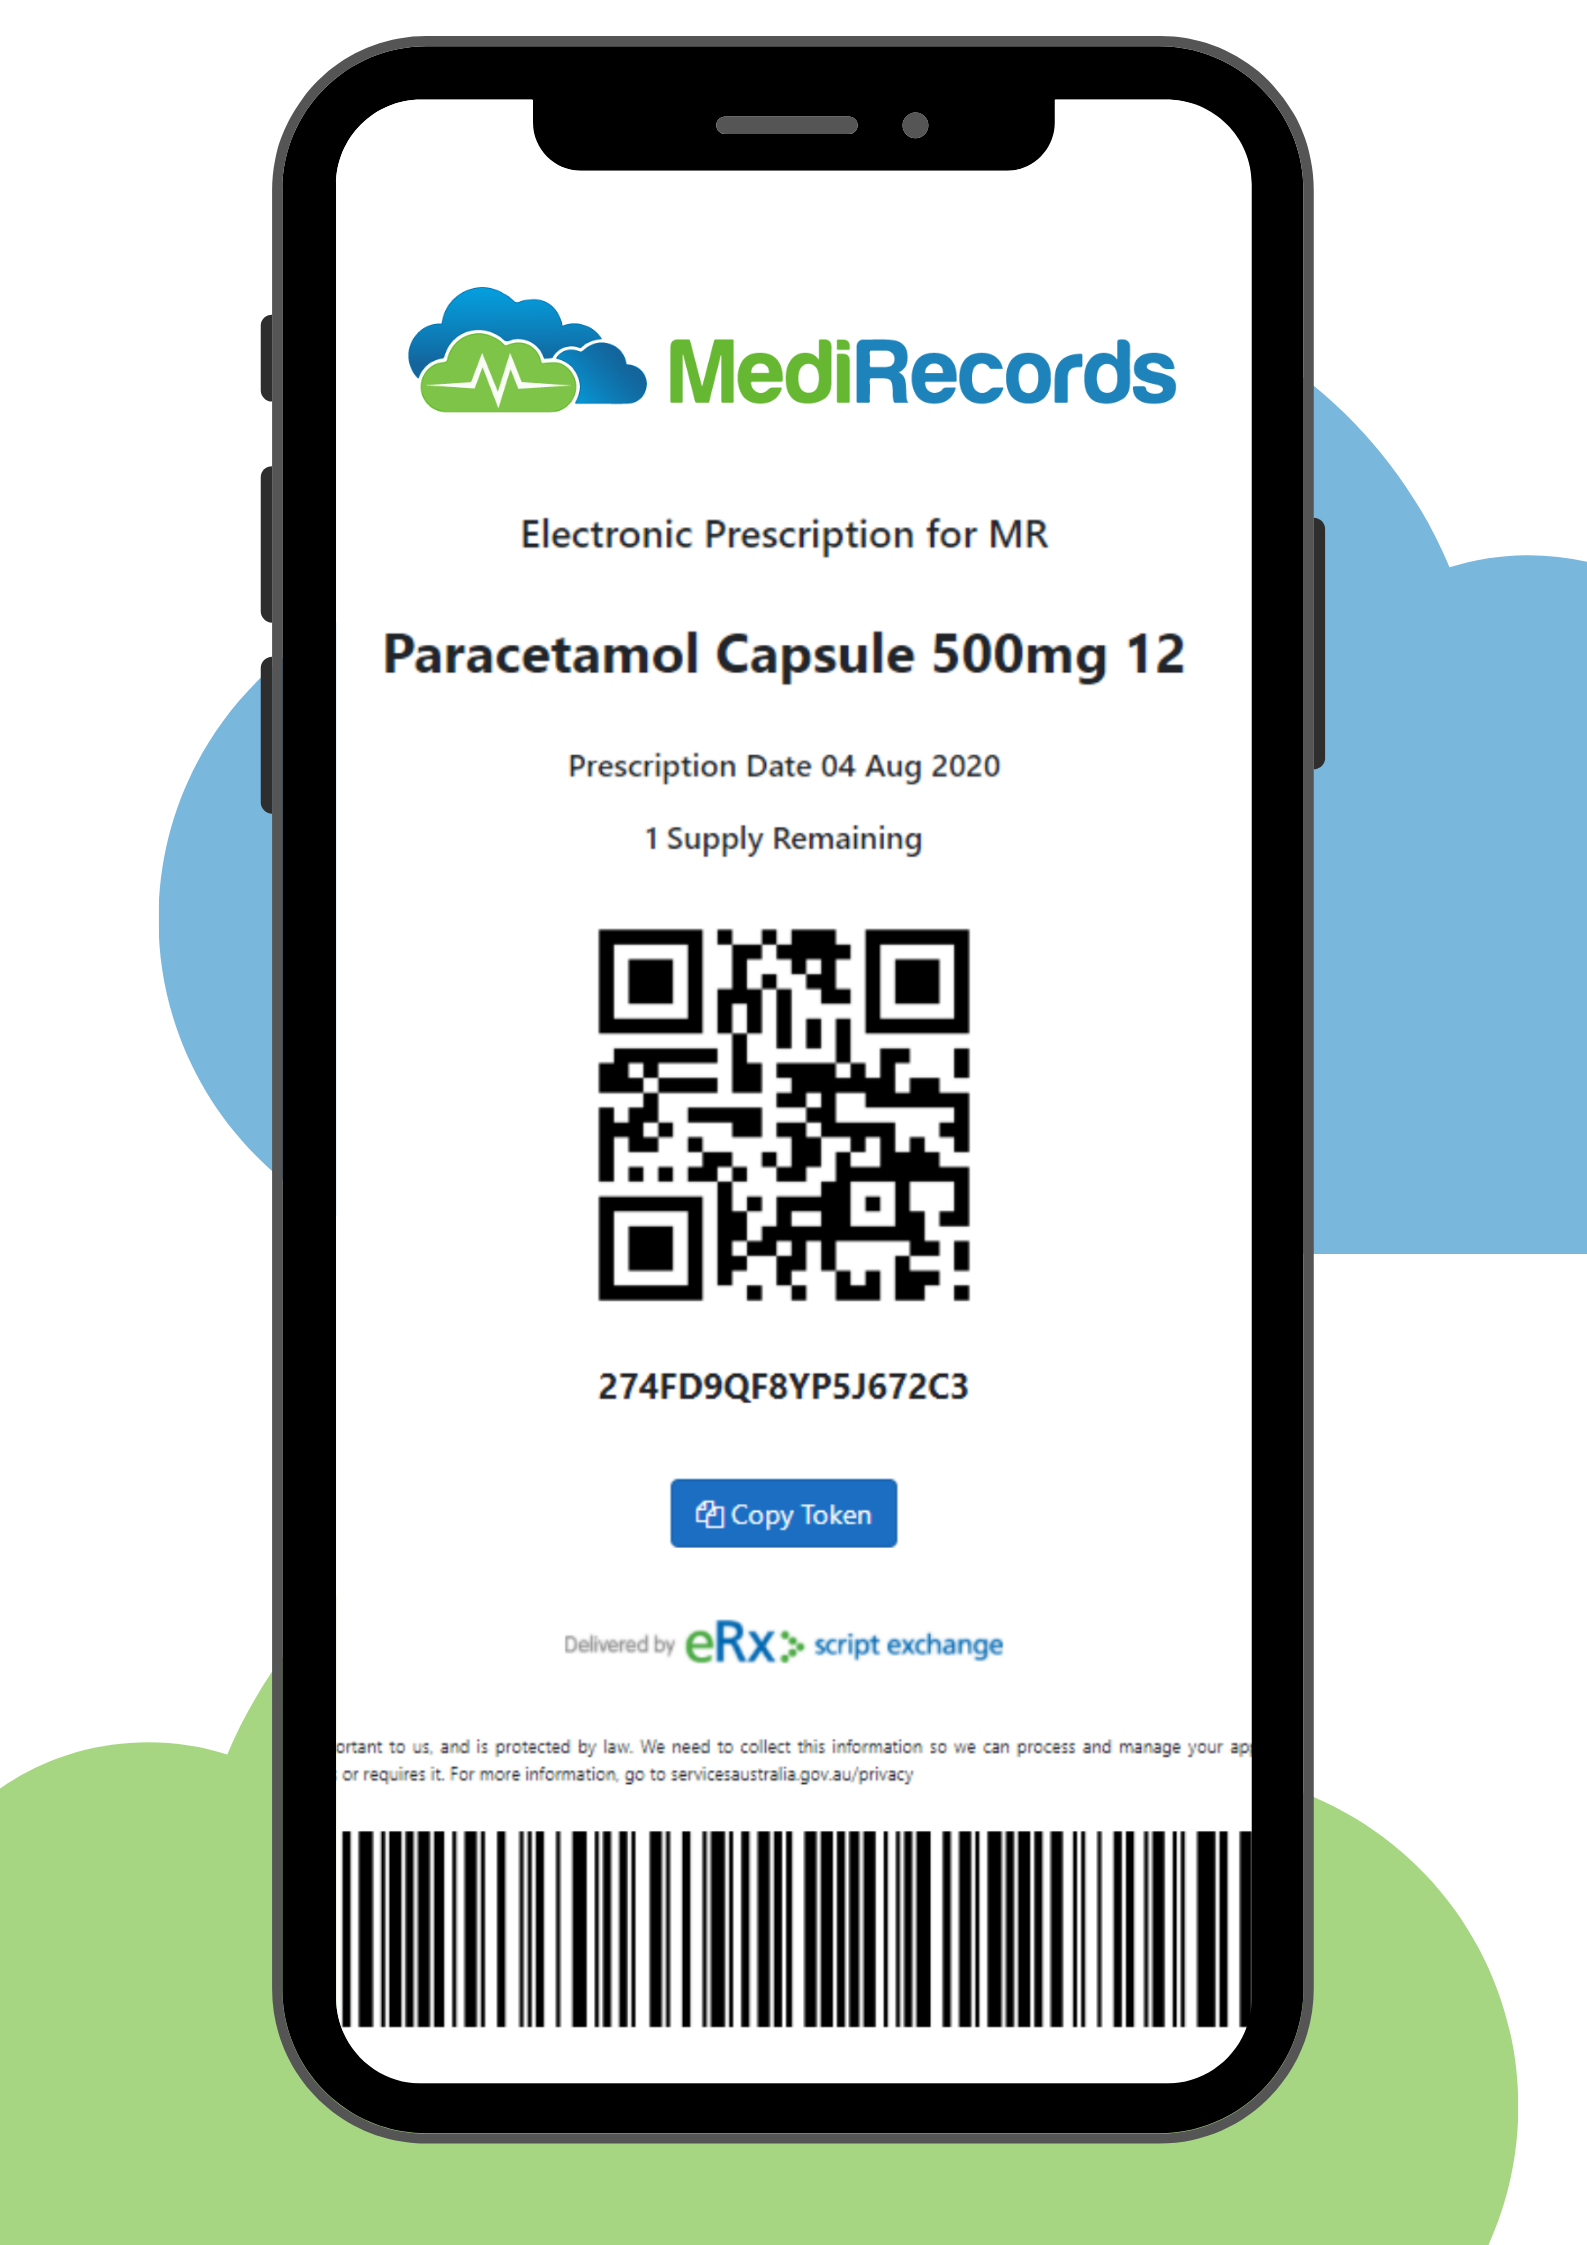 MediRecords Product Update October 2020